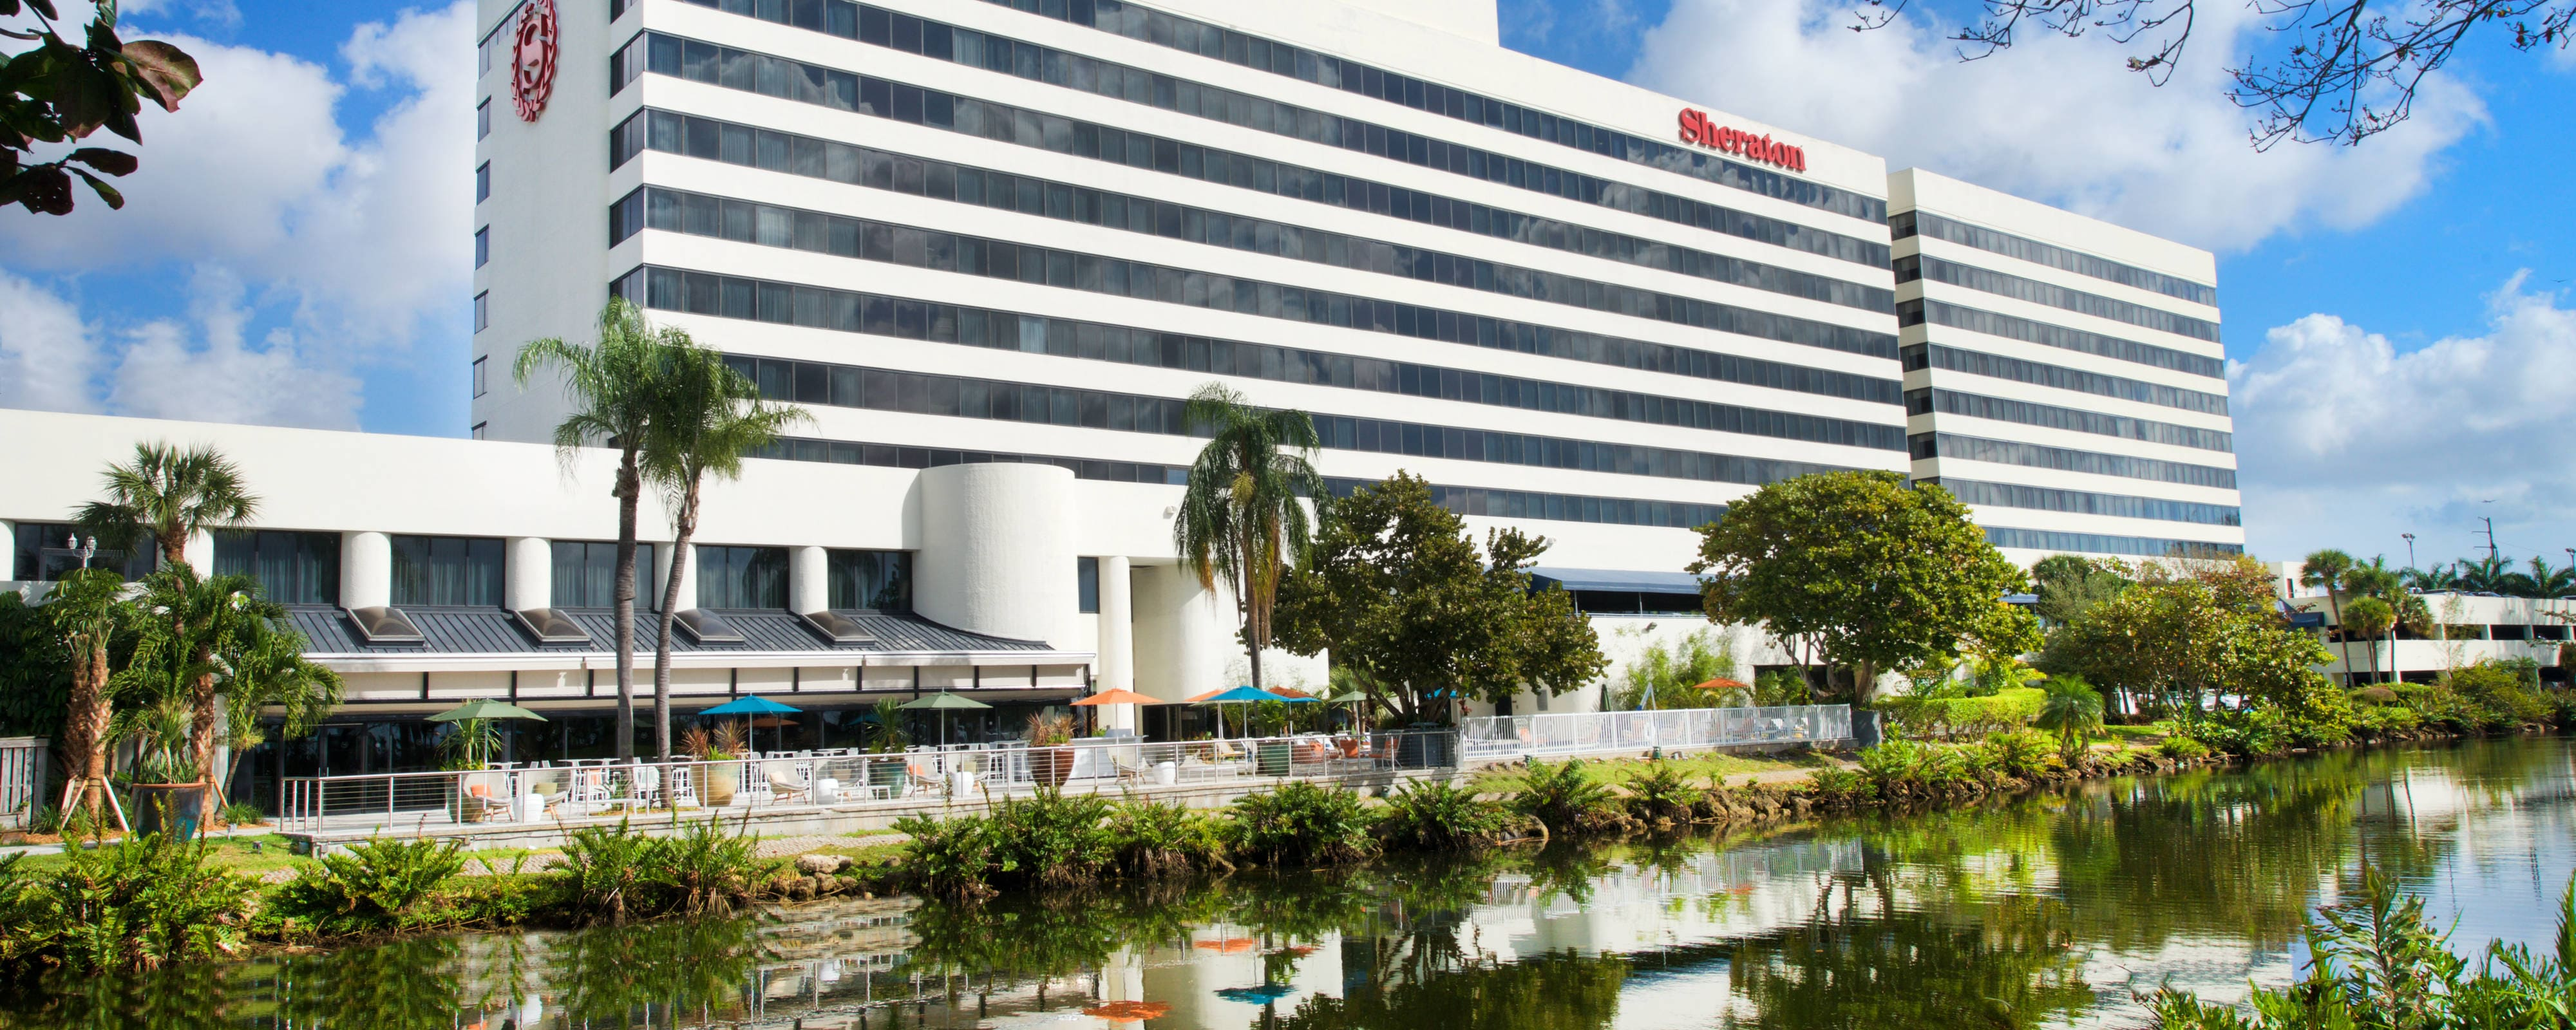 Hotels Miami Airport